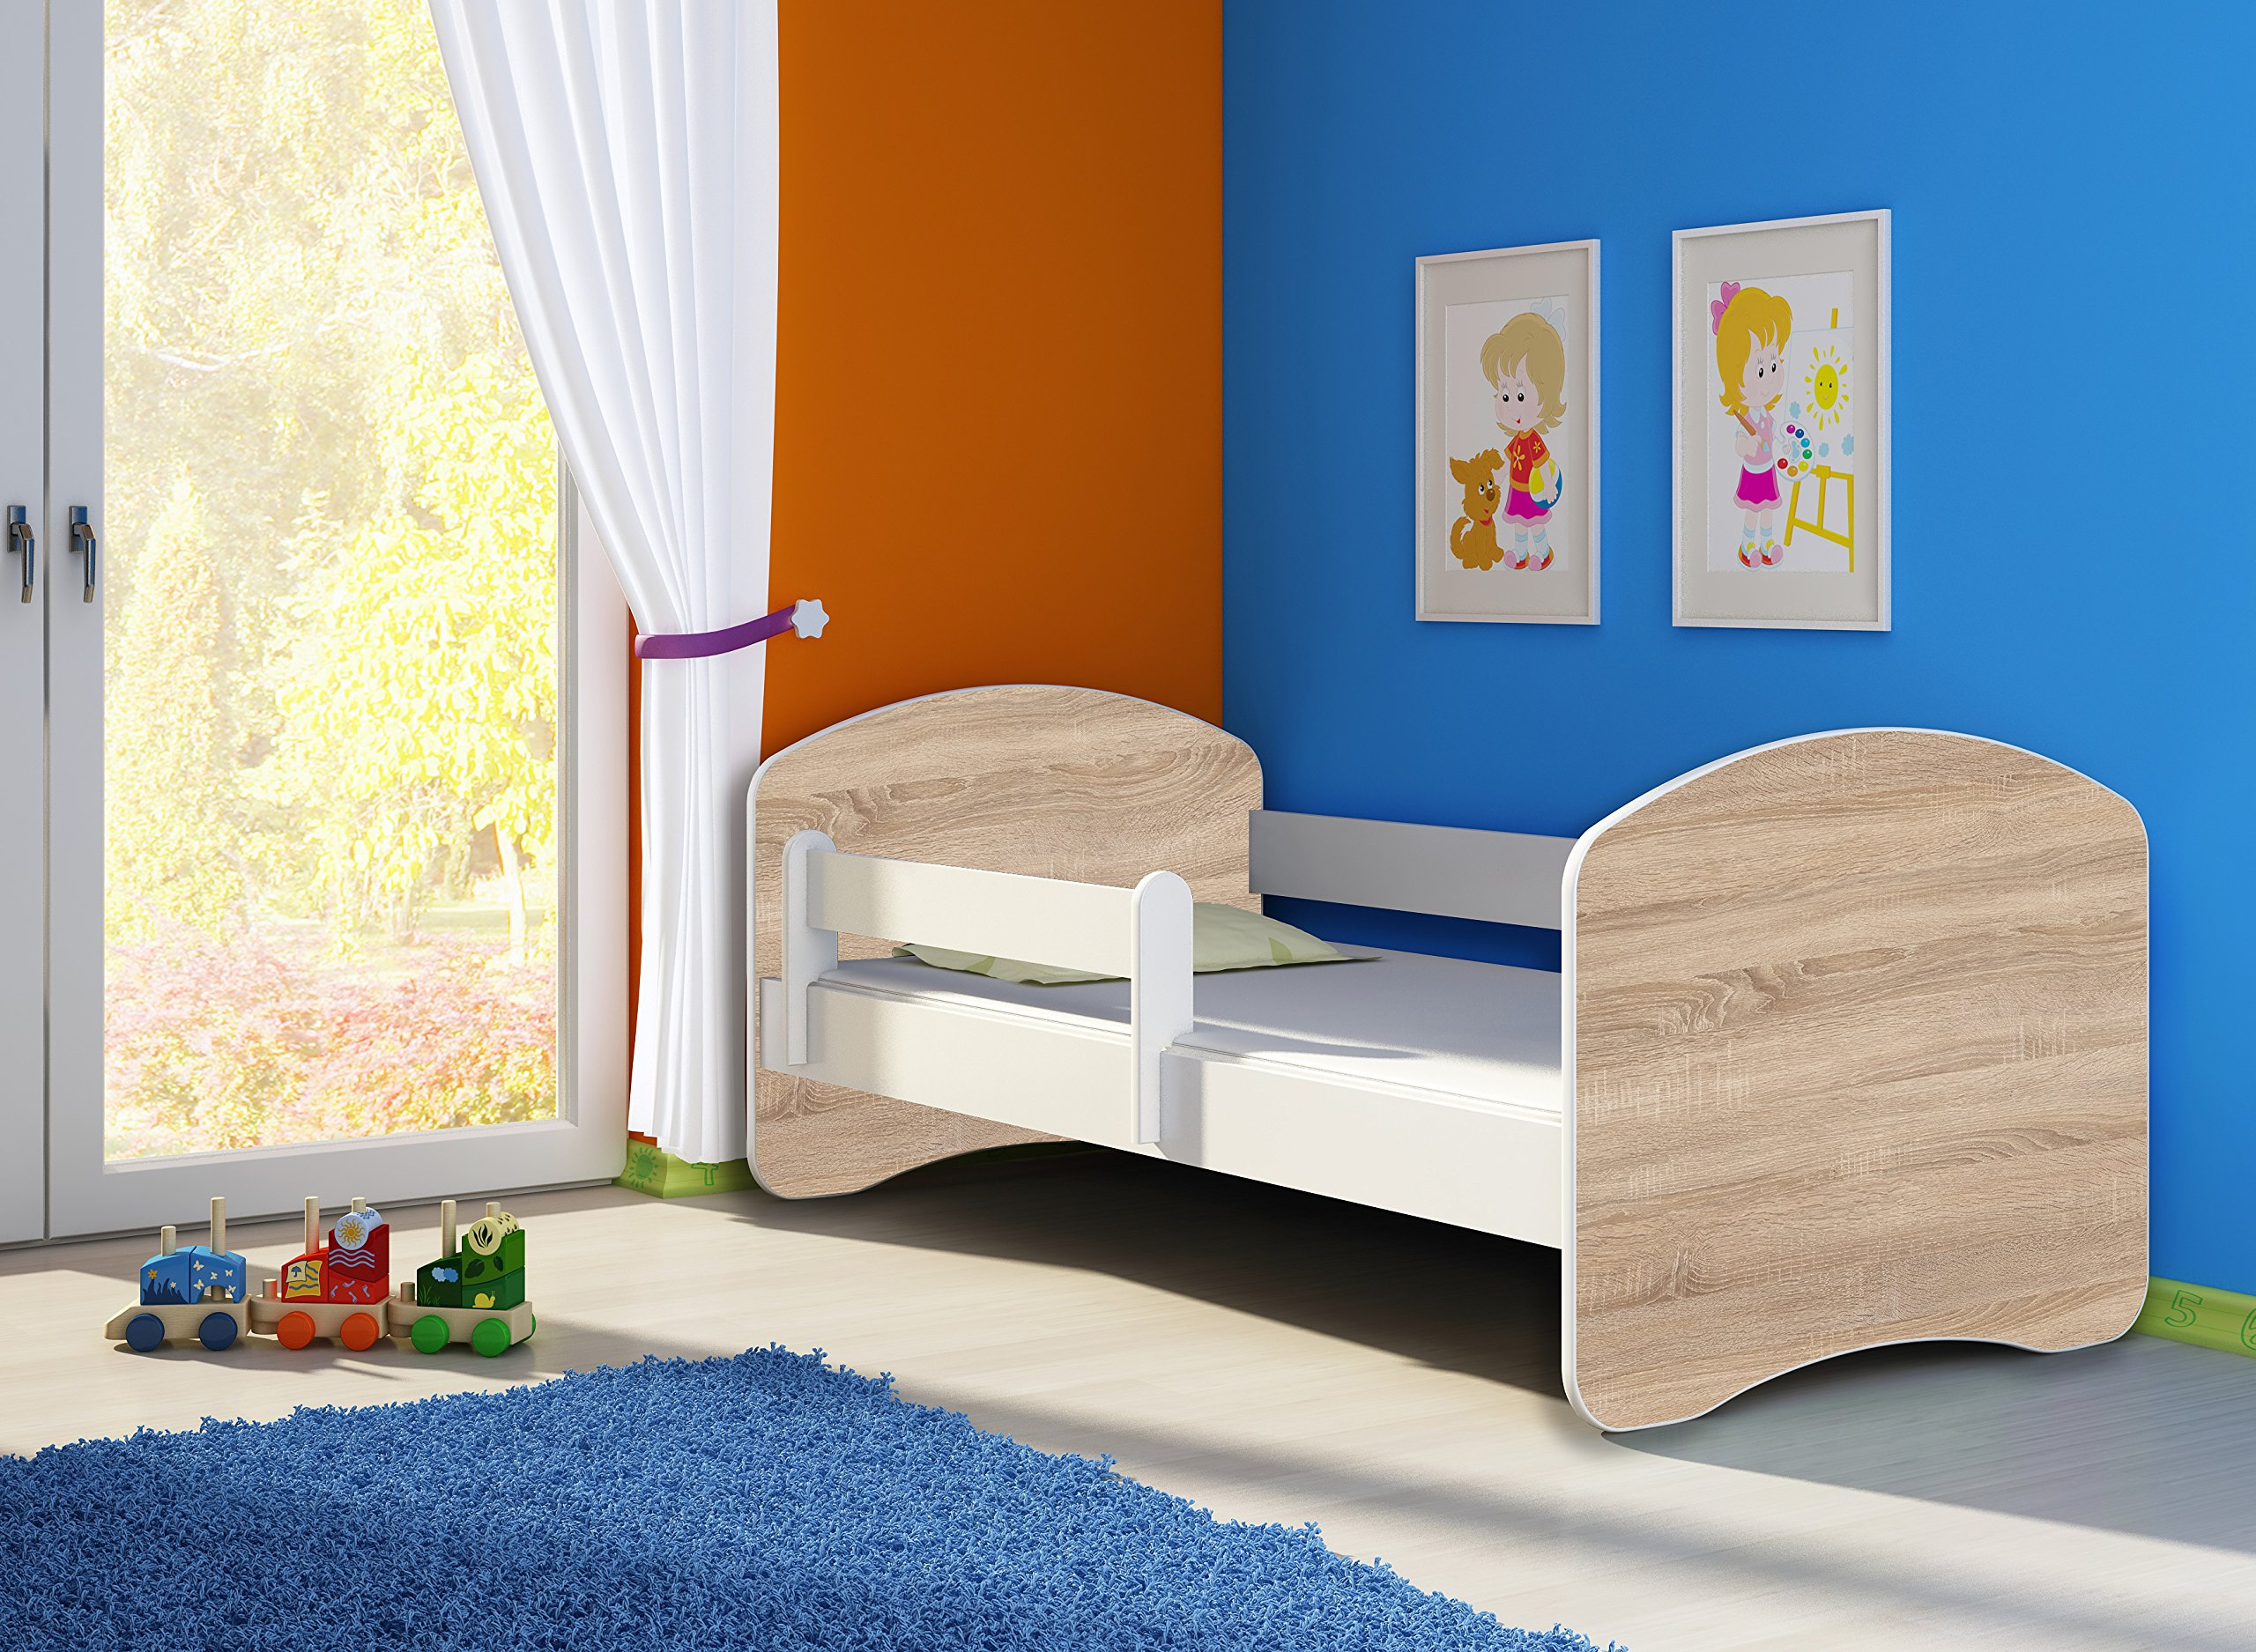 ACMA II TODDLER CHILDREN KIDS BED + FREE MATTRESS DRAWER WHITE 140x70 160x80 180x80 (140x70 cm, White - Sonoma Wood) ACMA Dimensions : 144 cm x 75 cm x 62 cm For safety all the edges of the bed are covered with a special PCV material The bed is proper for kids up to 100 kg 2